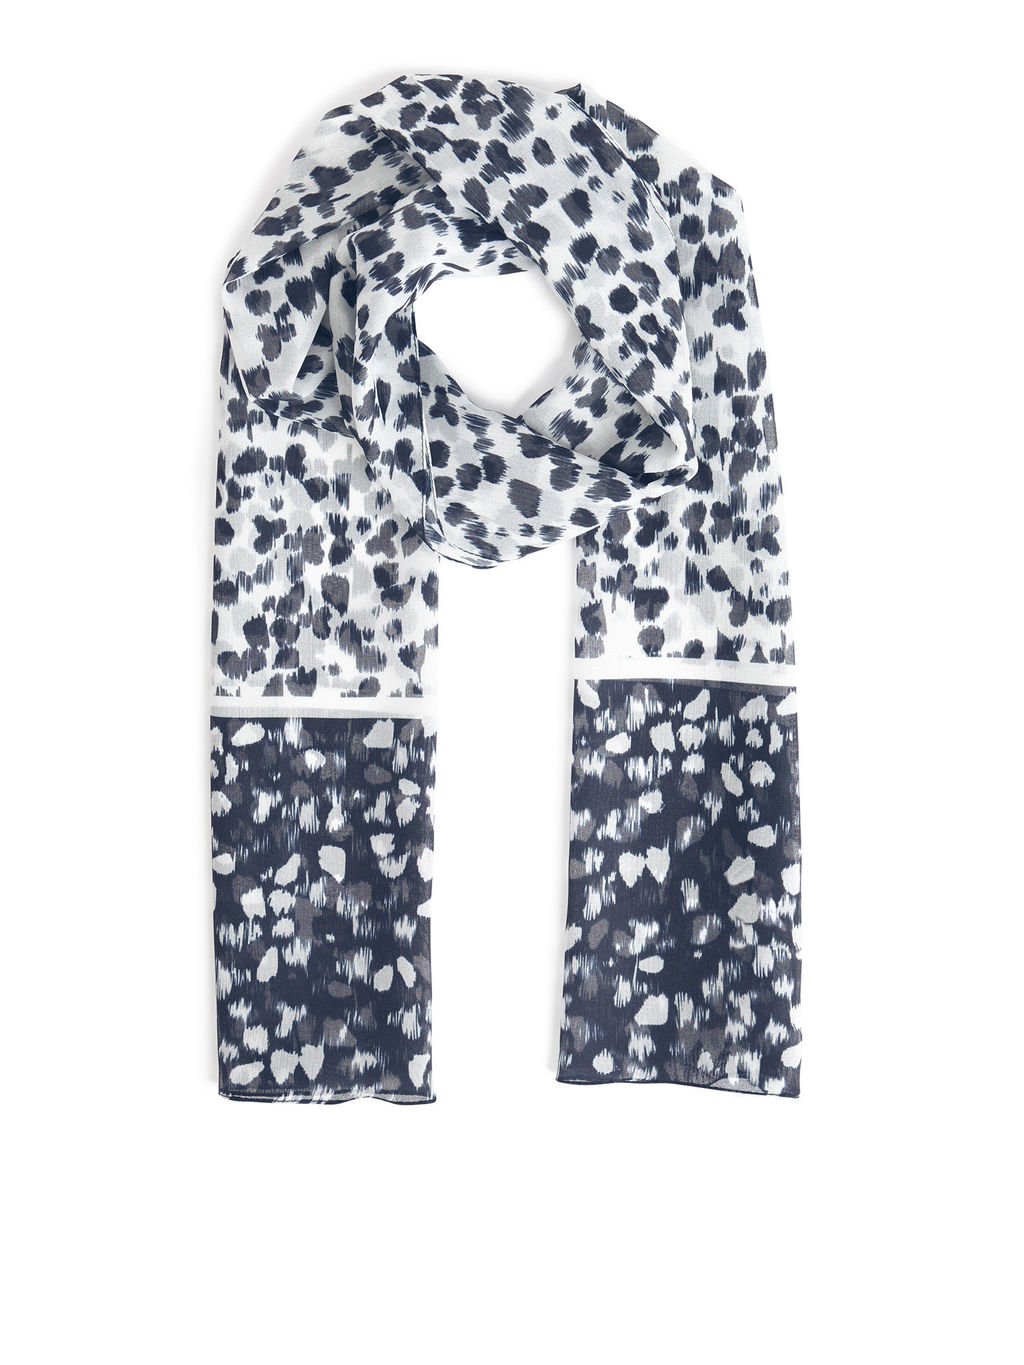 Rossmoor Scarf - predominant colour: white; secondary colour: navy; occasions: casual, creative work; type of pattern: light; style: regular; size: standard; material: fabric; pattern: patterned/print; season: s/s 2016